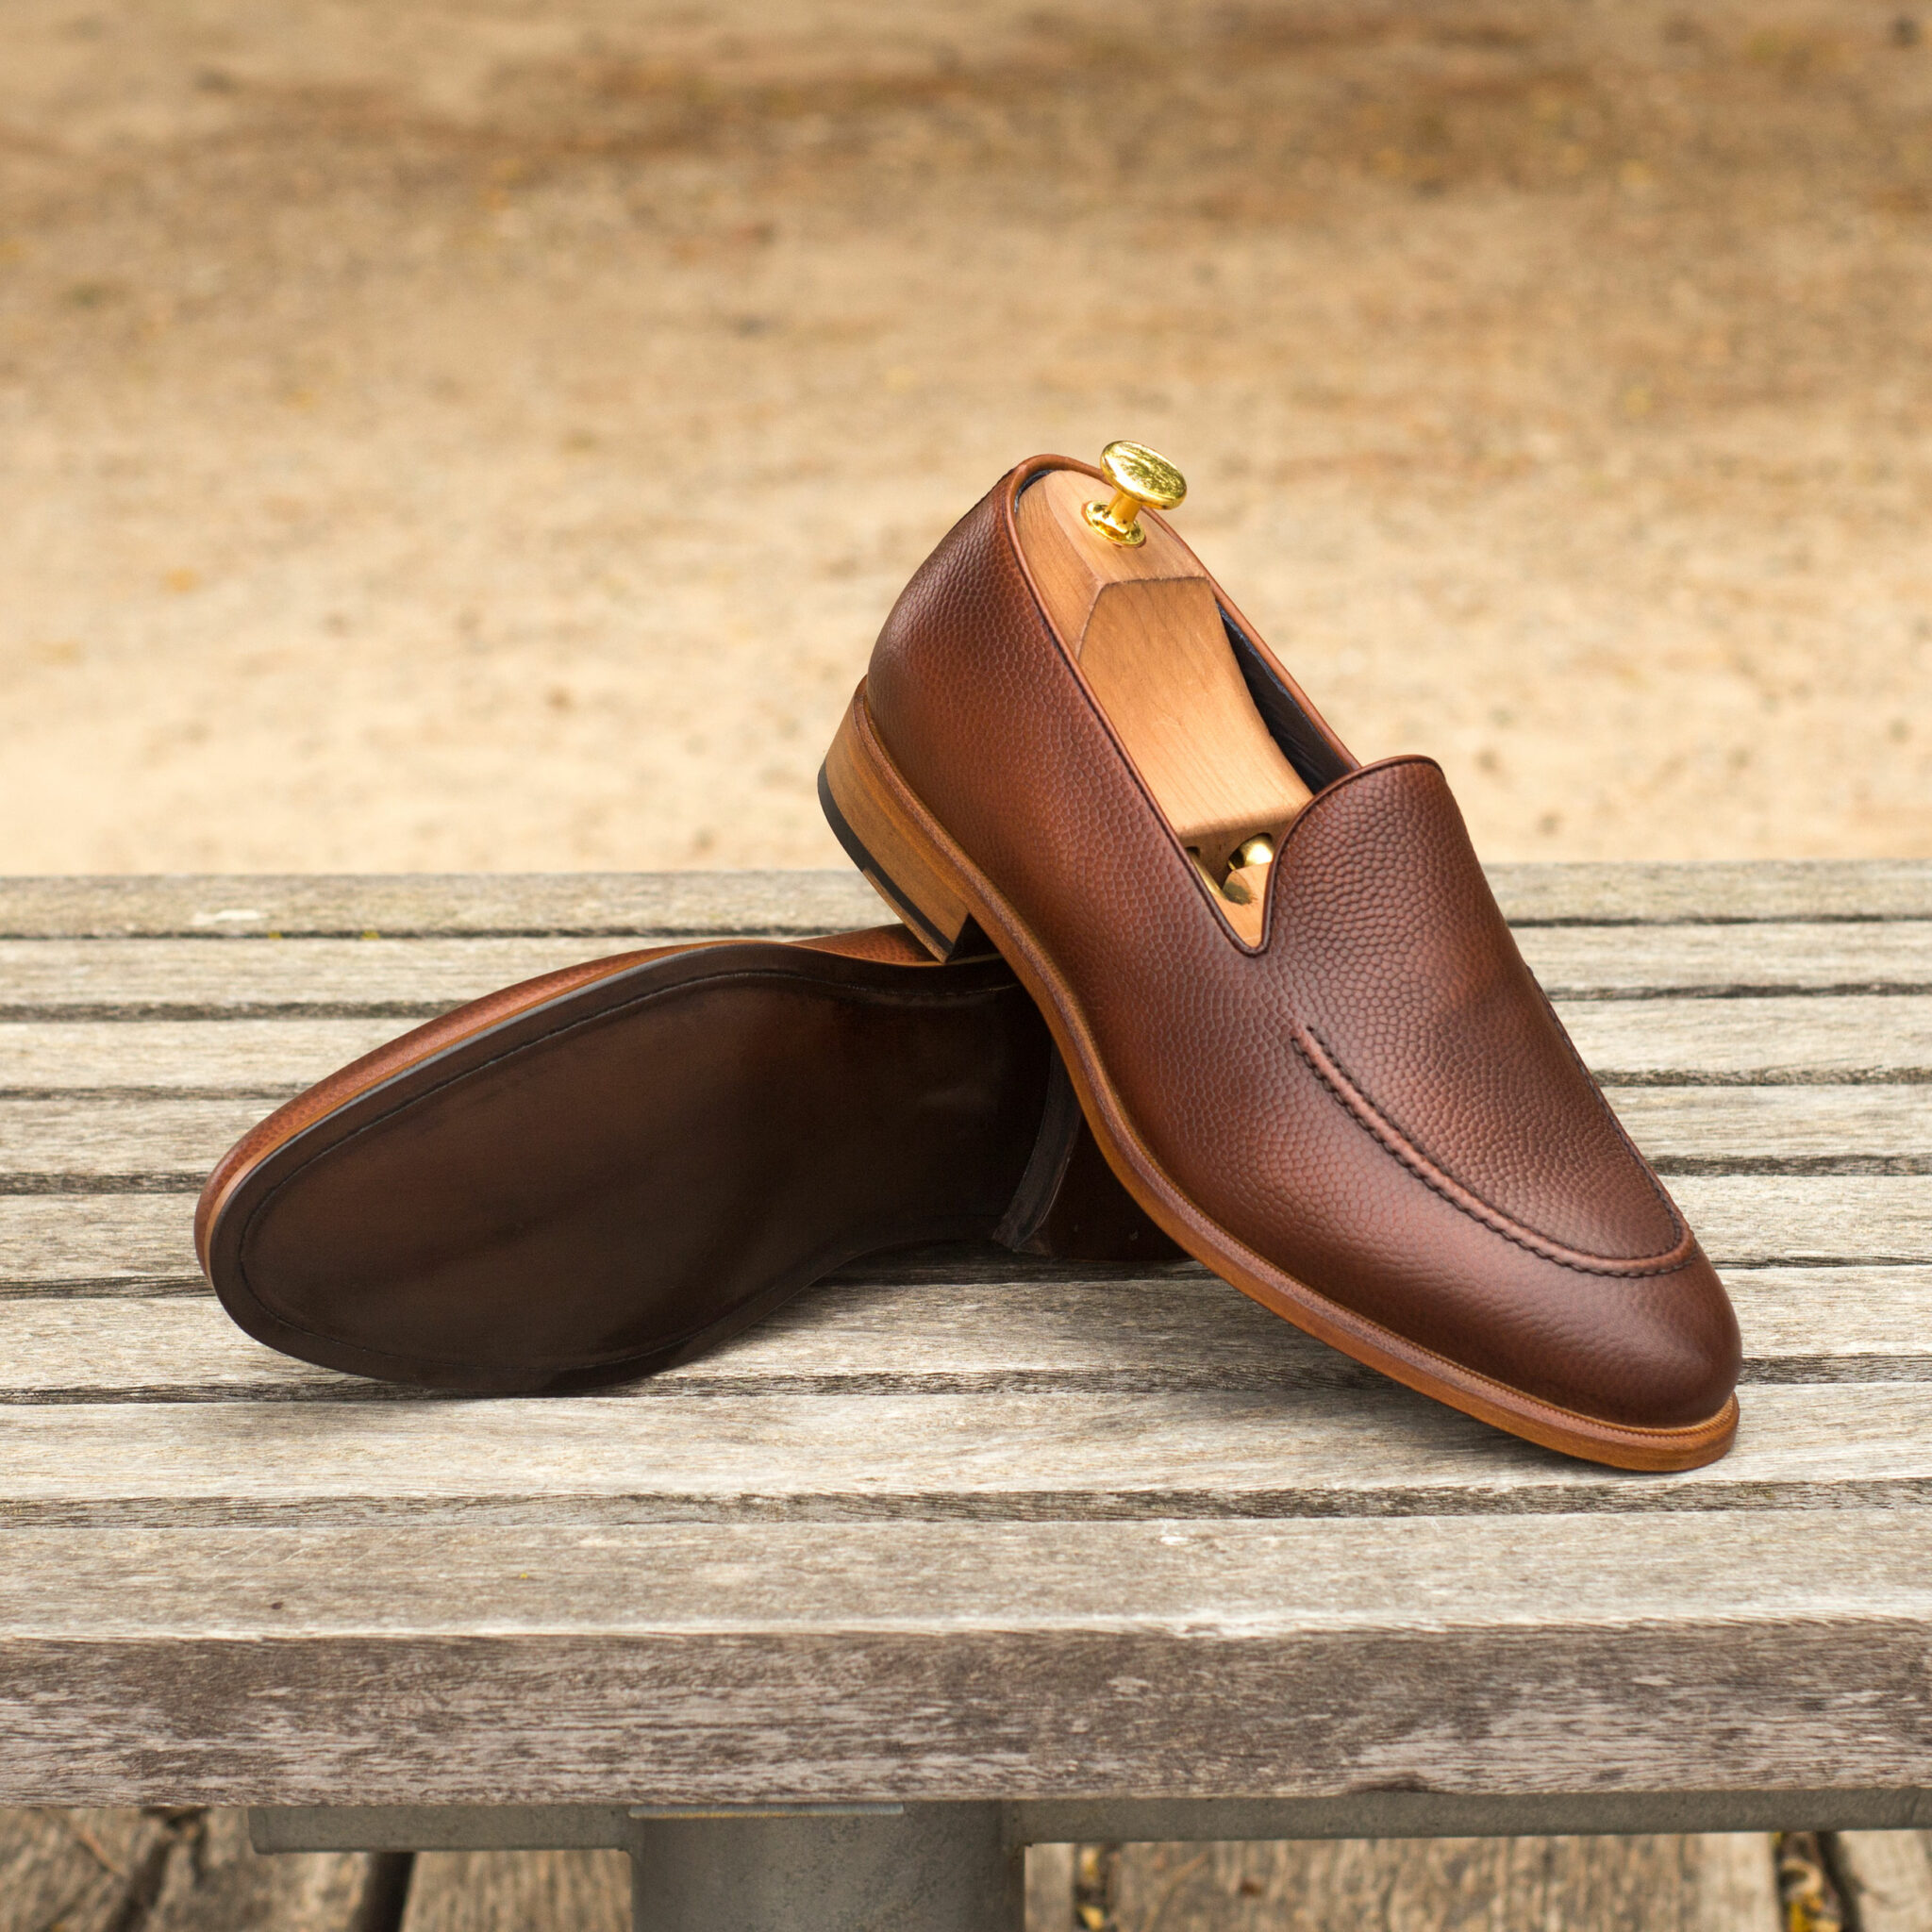 Loafer dark brown painted calf + med brown painted calf : 240€